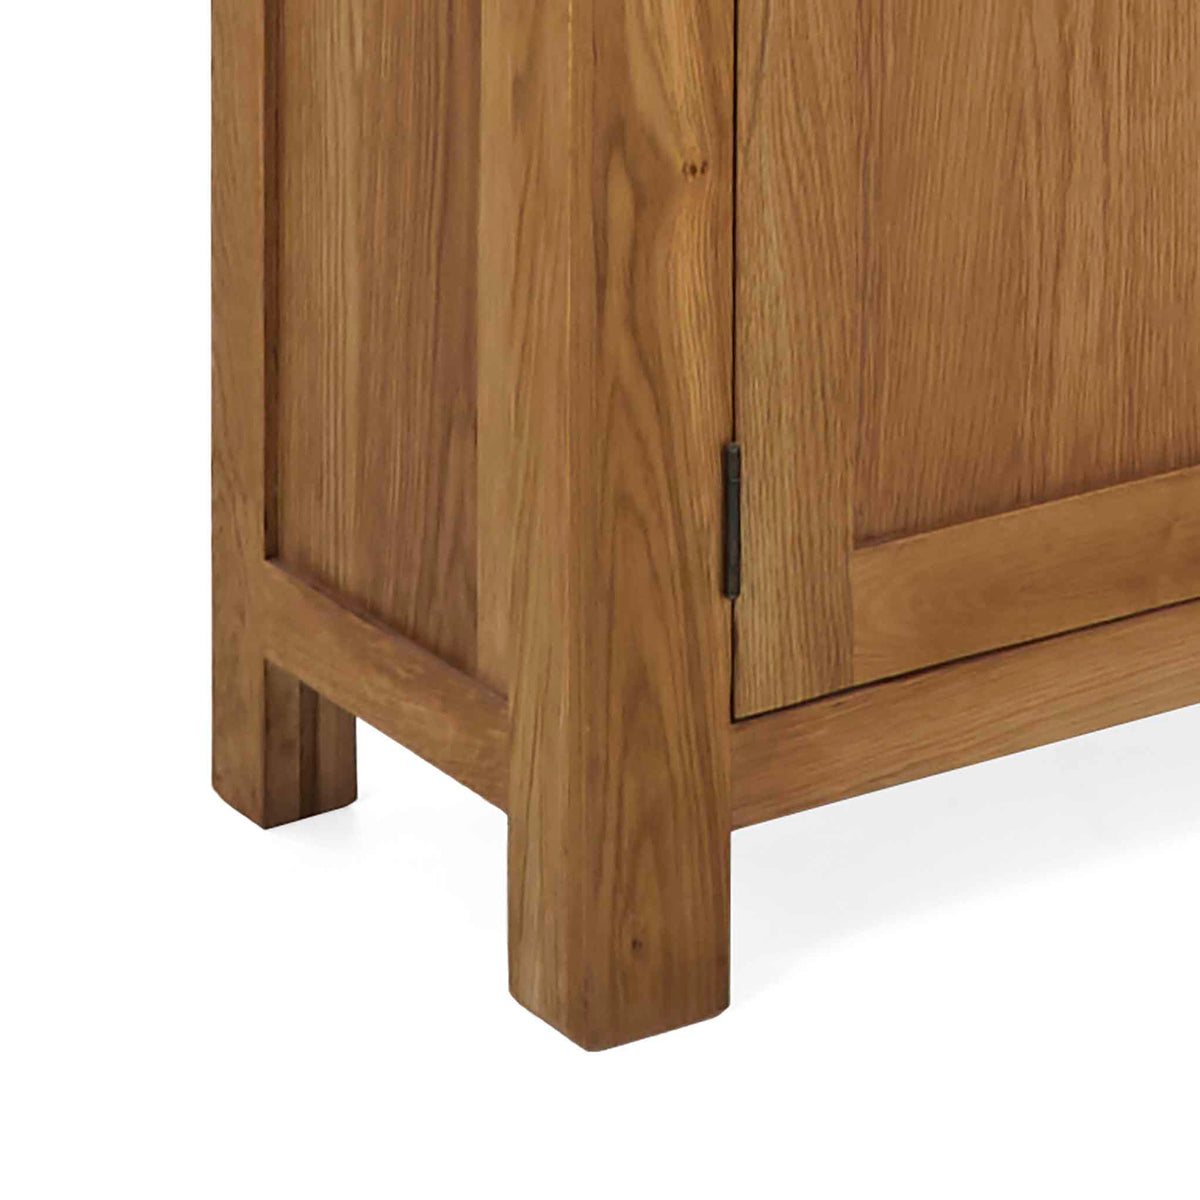 Zelah Oak Extra Large Sideboard - Base of sideboard